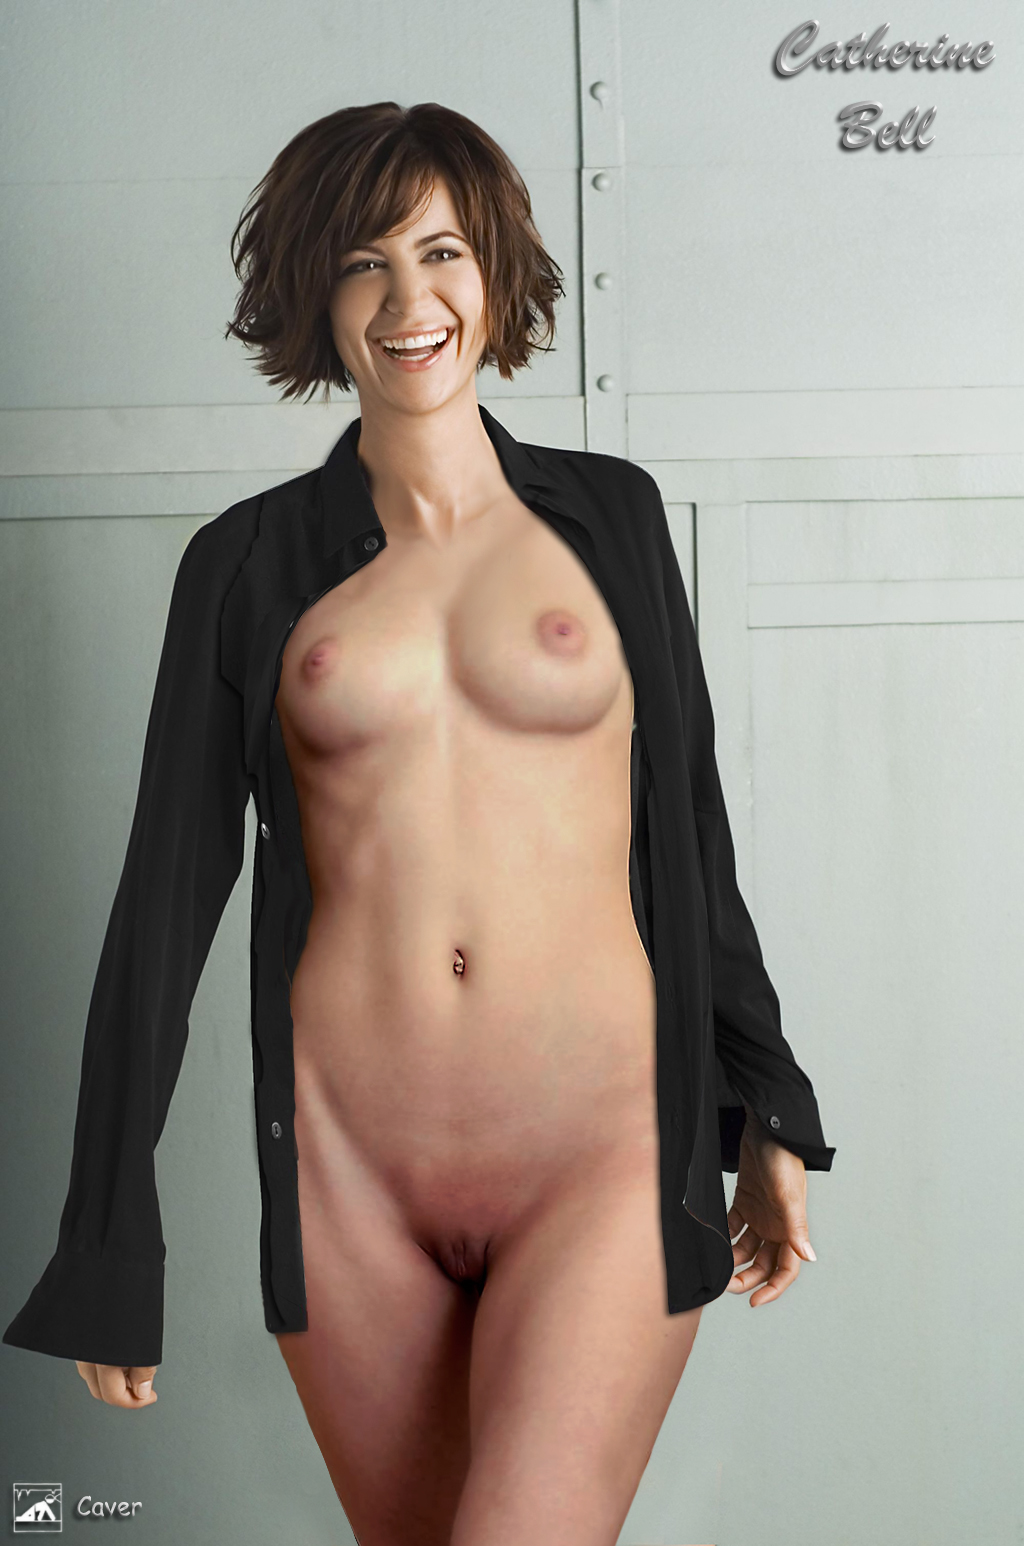 topless catherine bell